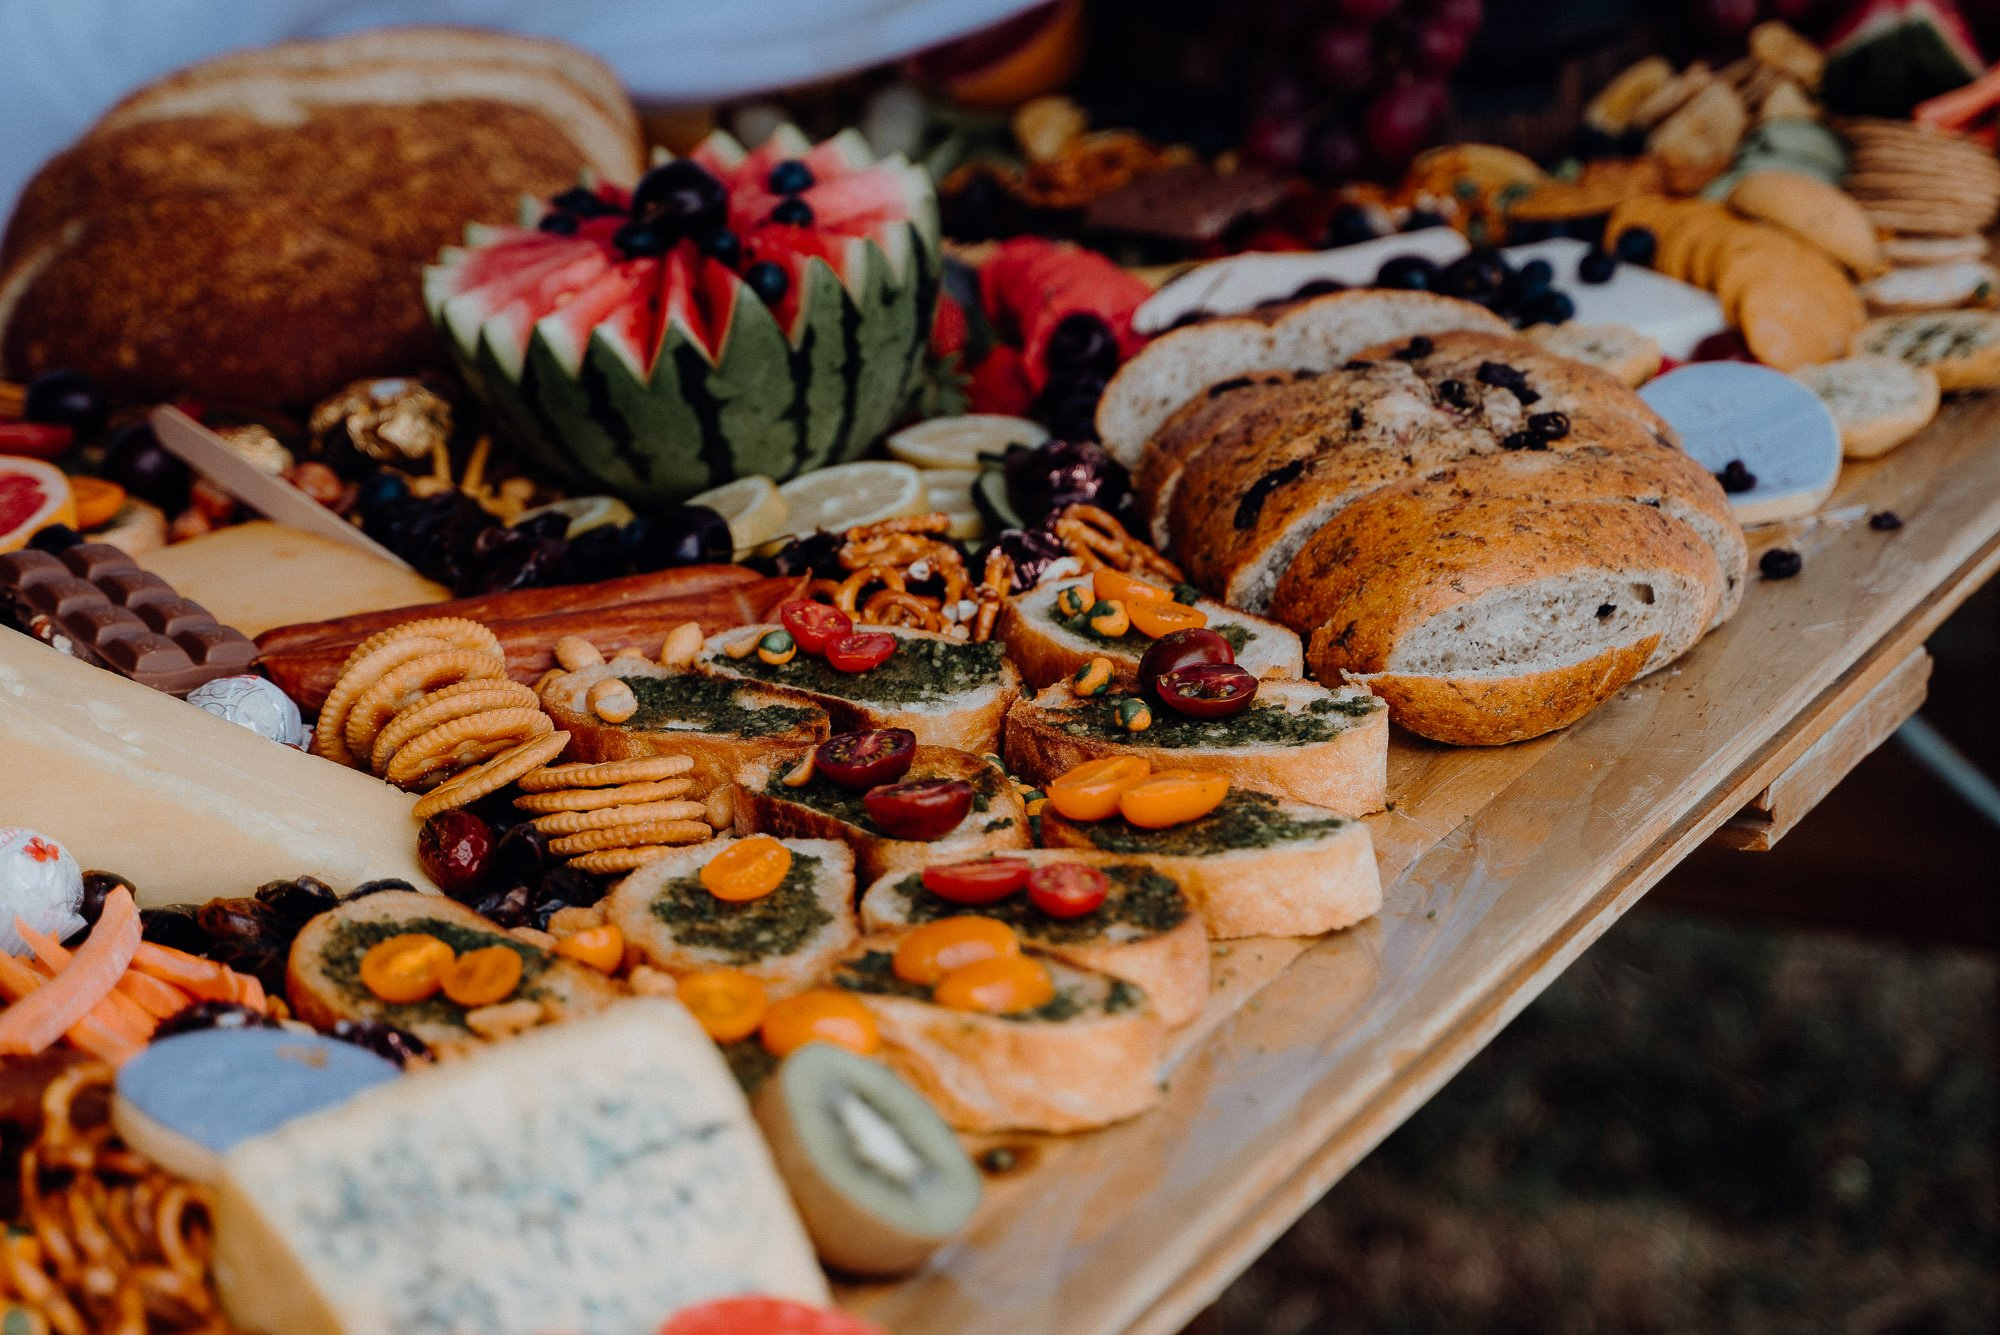 Wedding Photography Of Grazing Table Ideas 007, lots of bread and dips as well as fresh and dried fruits